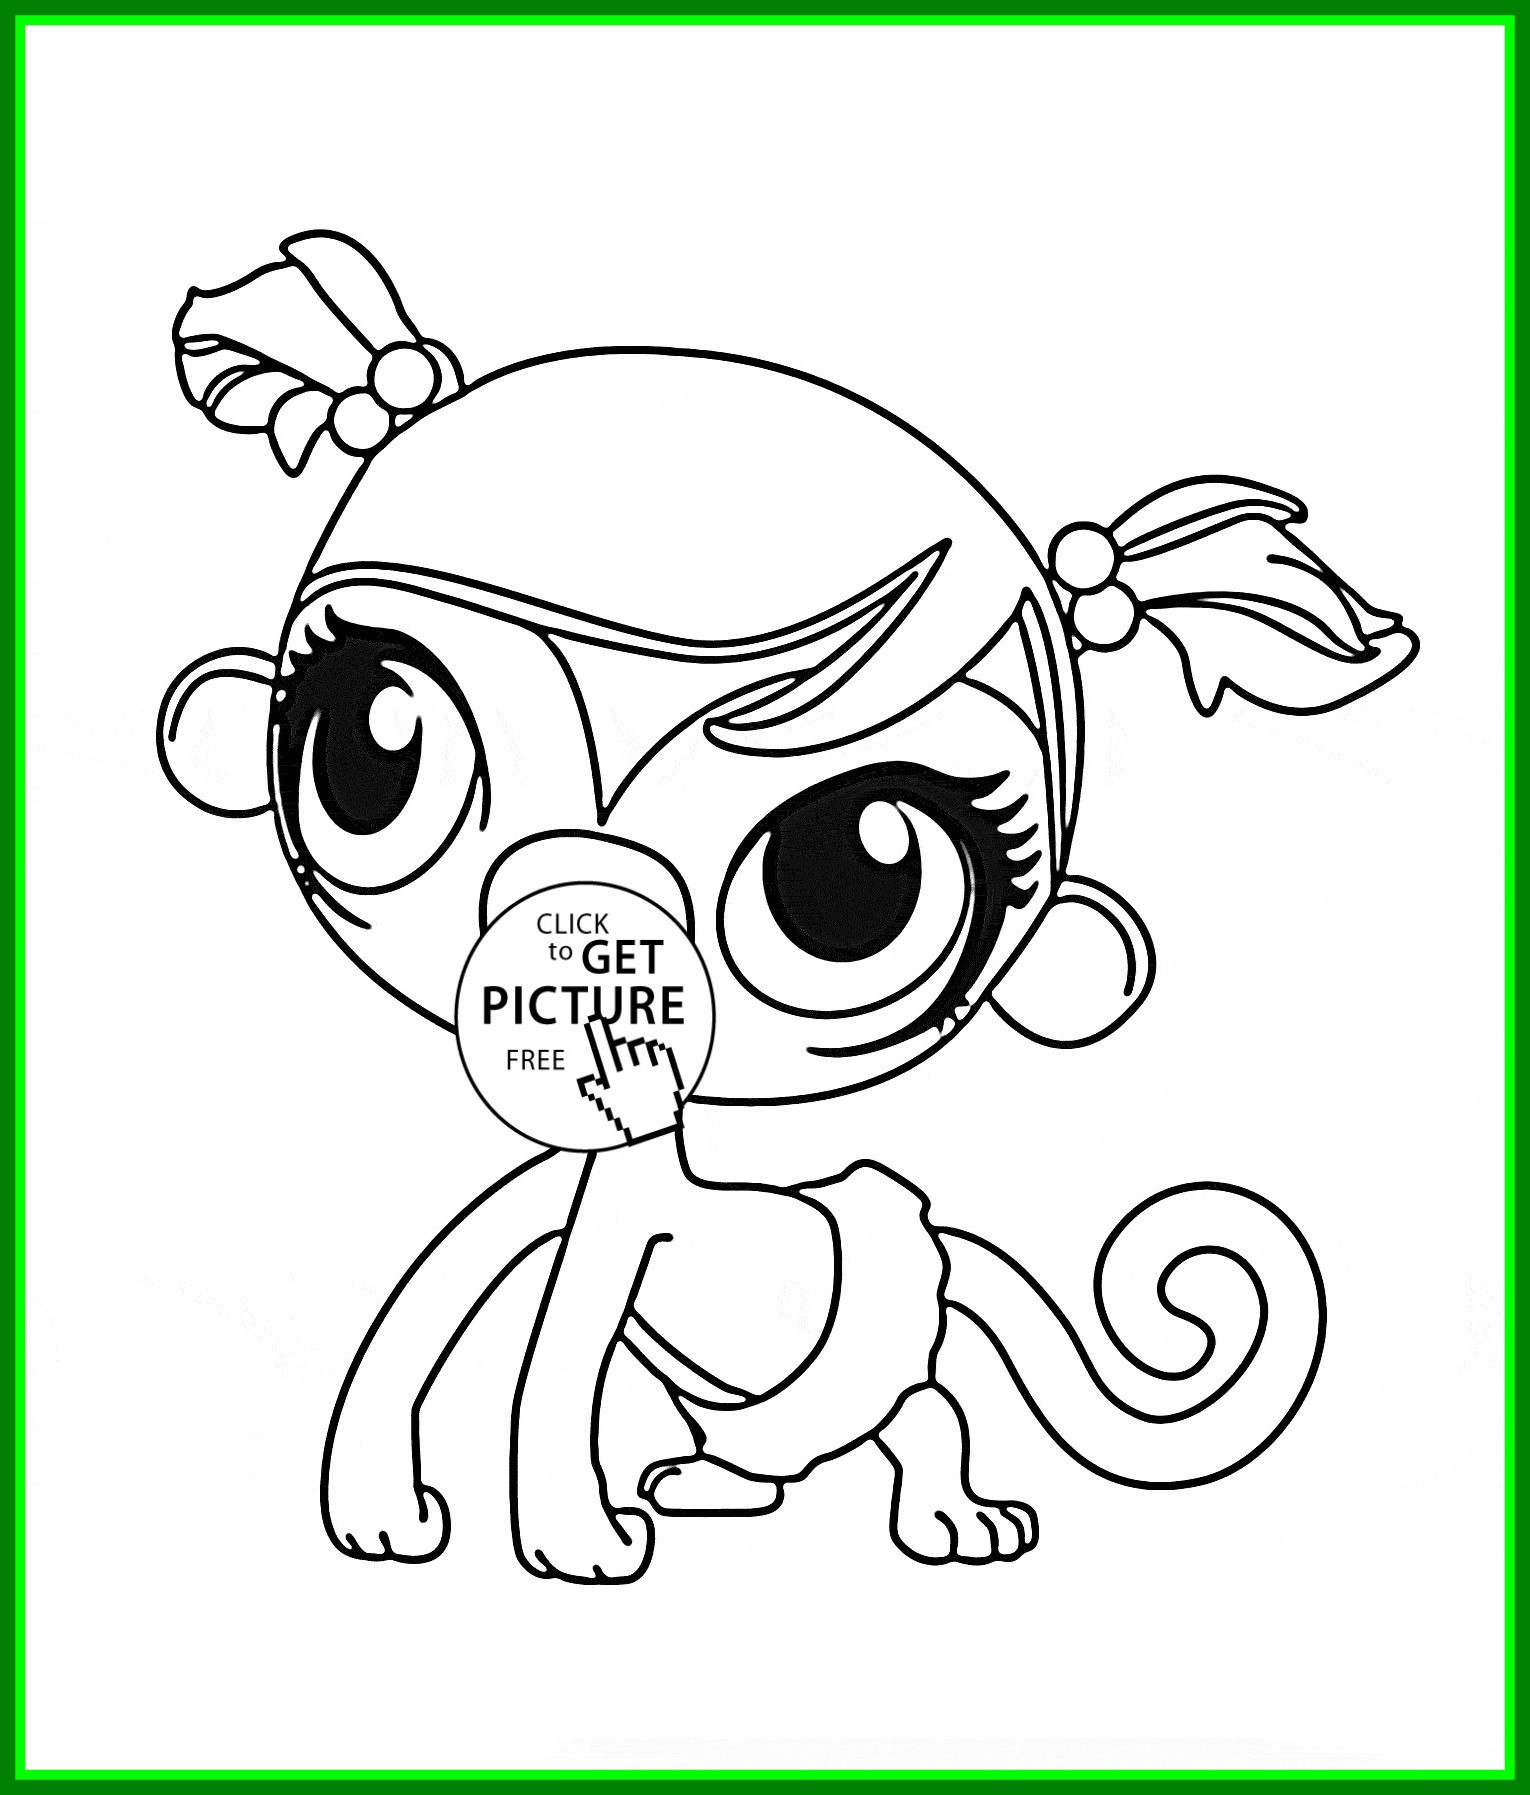 Lps Christmas Coloring Pages With To Print Best Image Of Page Revimage Co